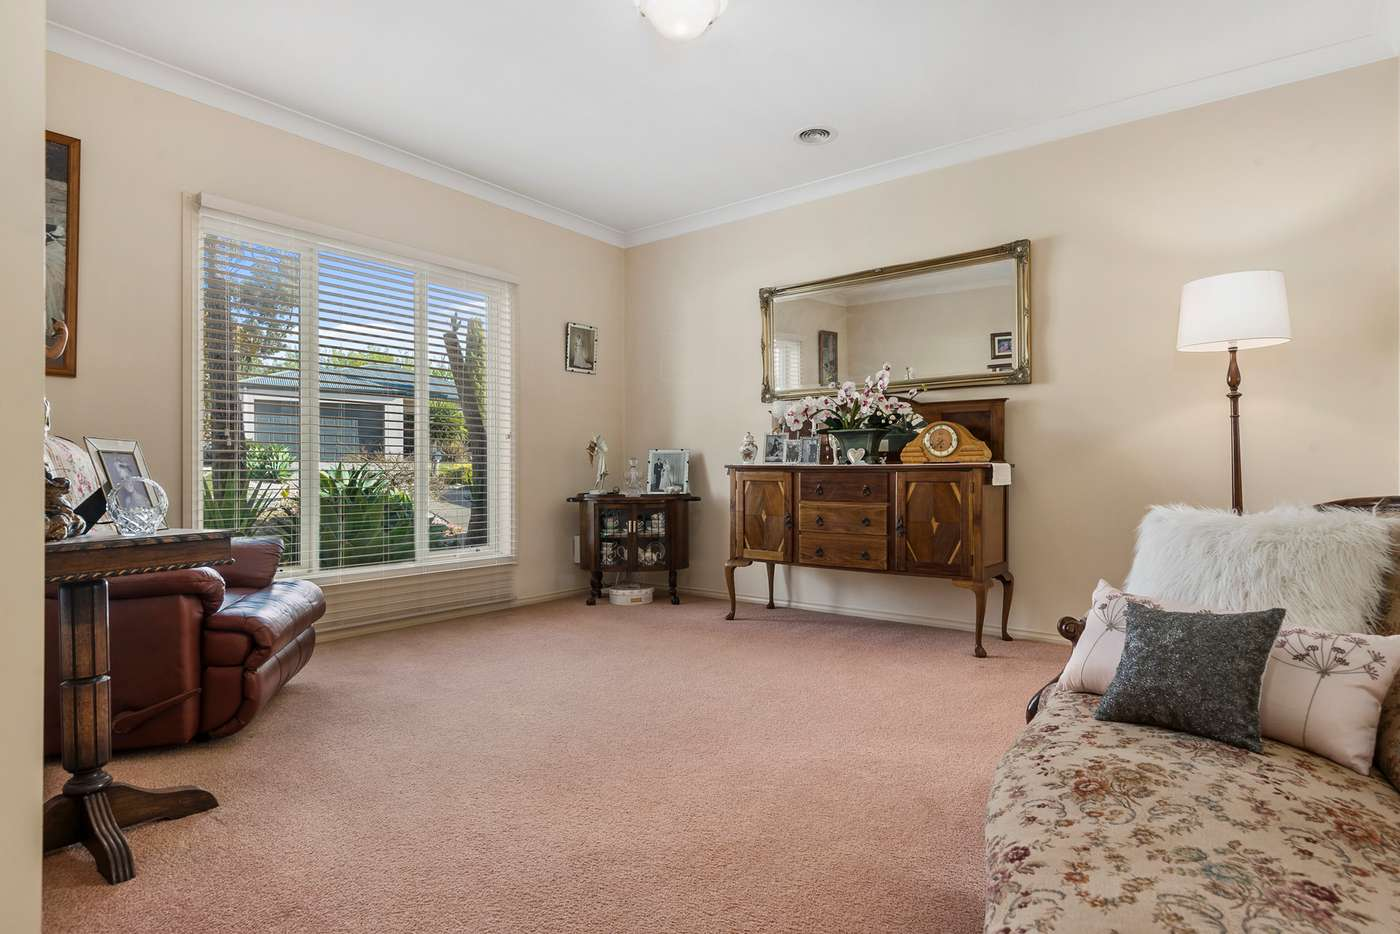 Sixth view of Homely house listing, 6 Stamford Close, Bacchus Marsh VIC 3340